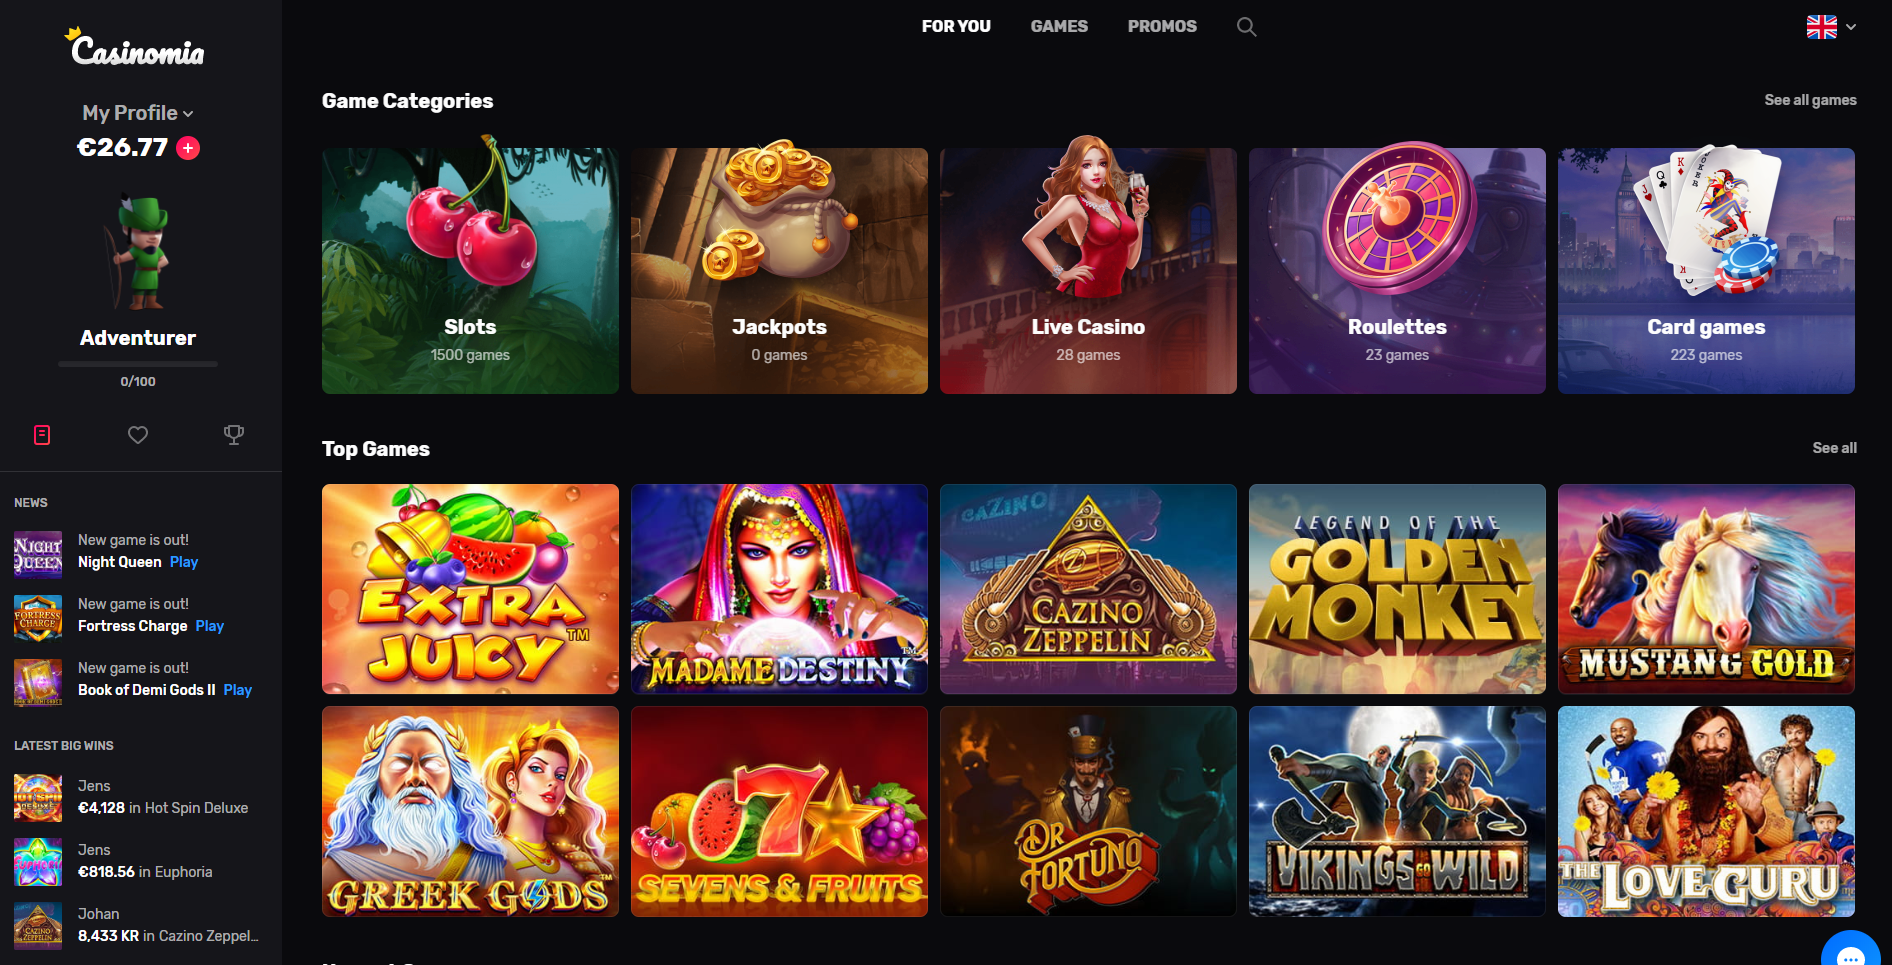 casinomia žaidimai - slots jackpots live casino roulettes card games extra juicy madame destiny golden monkey mustang gold vikings go wild greek gods